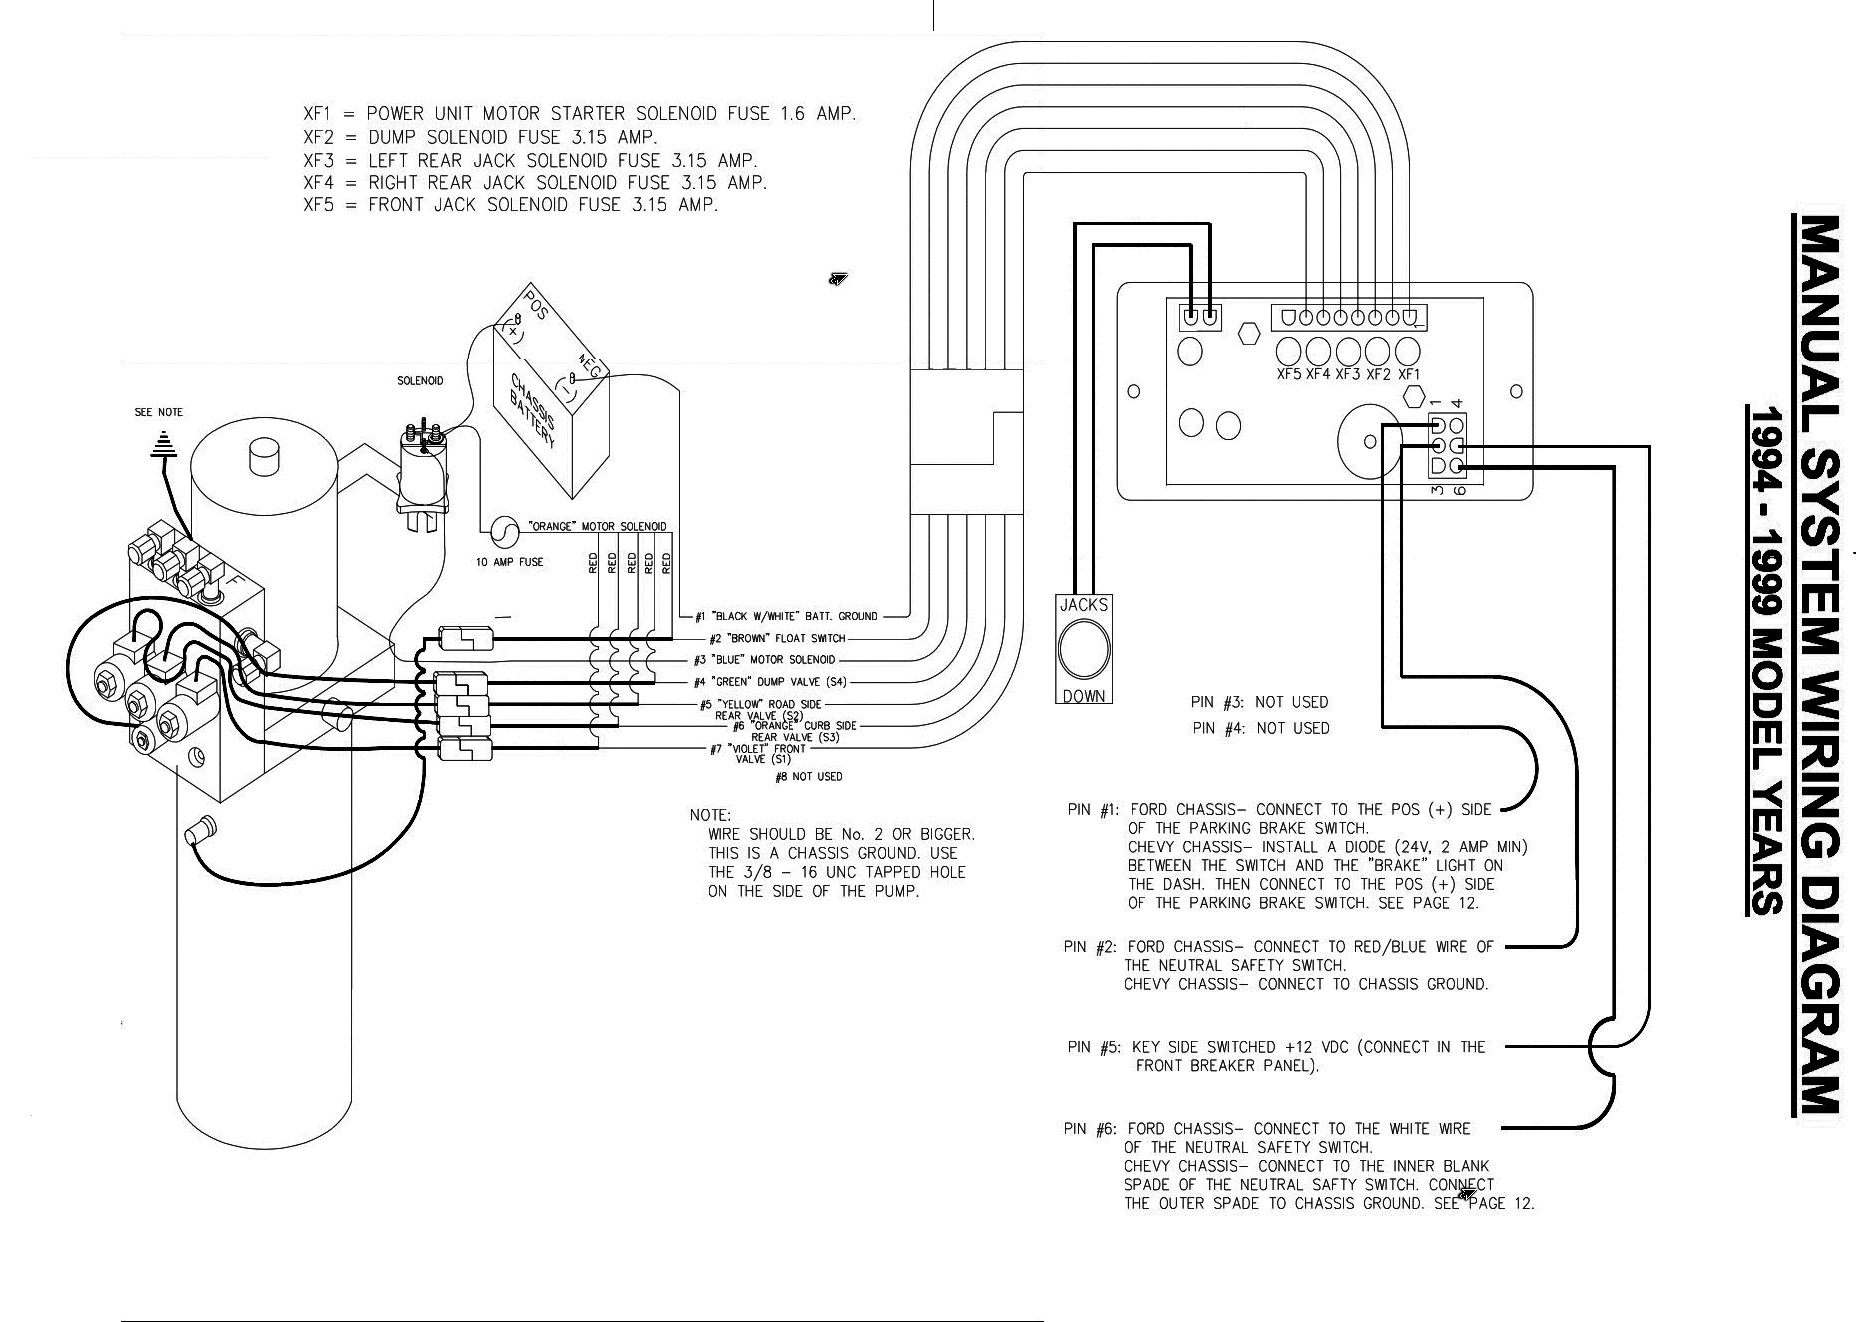 hight resolution of i am pretty sure my problem is originating on pins 1 2 or 6 as shown in the schematic i do have 12vdc on pin 5 the board comes on but as soon as you